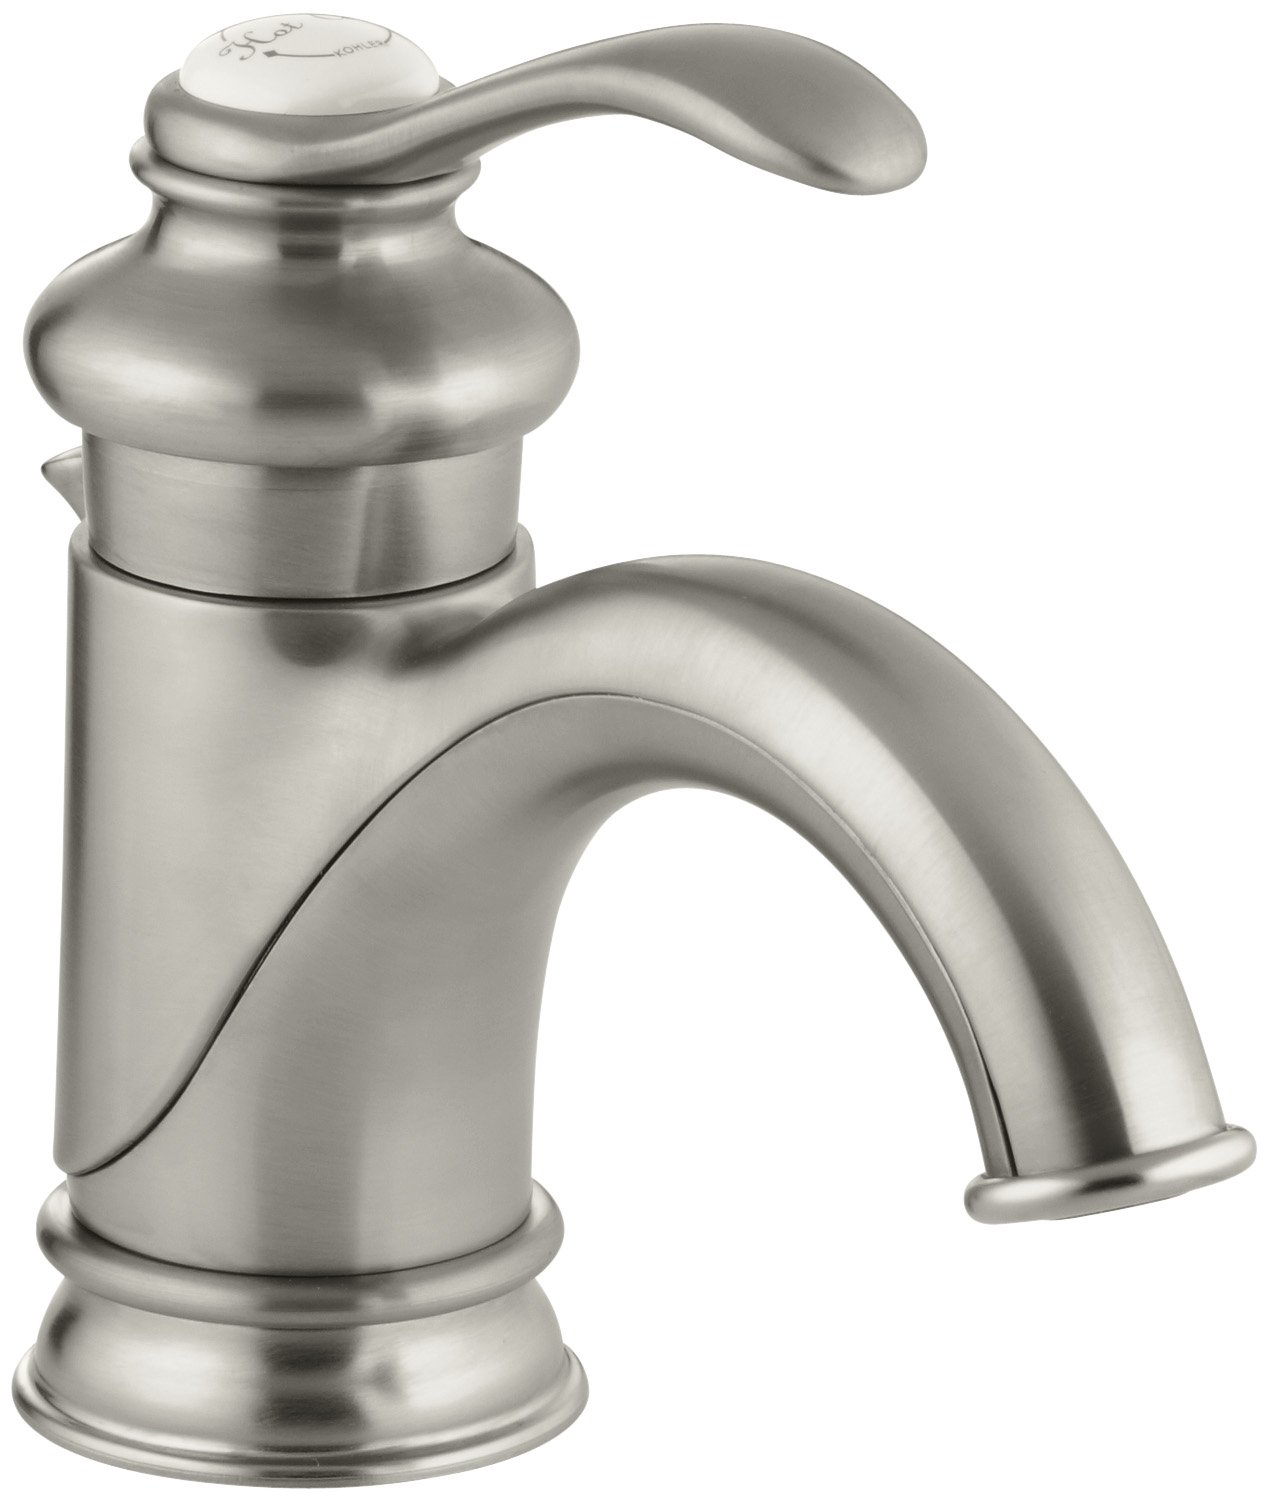 handle home resist depot faucets p sink en bathroom nickel canada faucet brushed adler the polished spot categories in bath